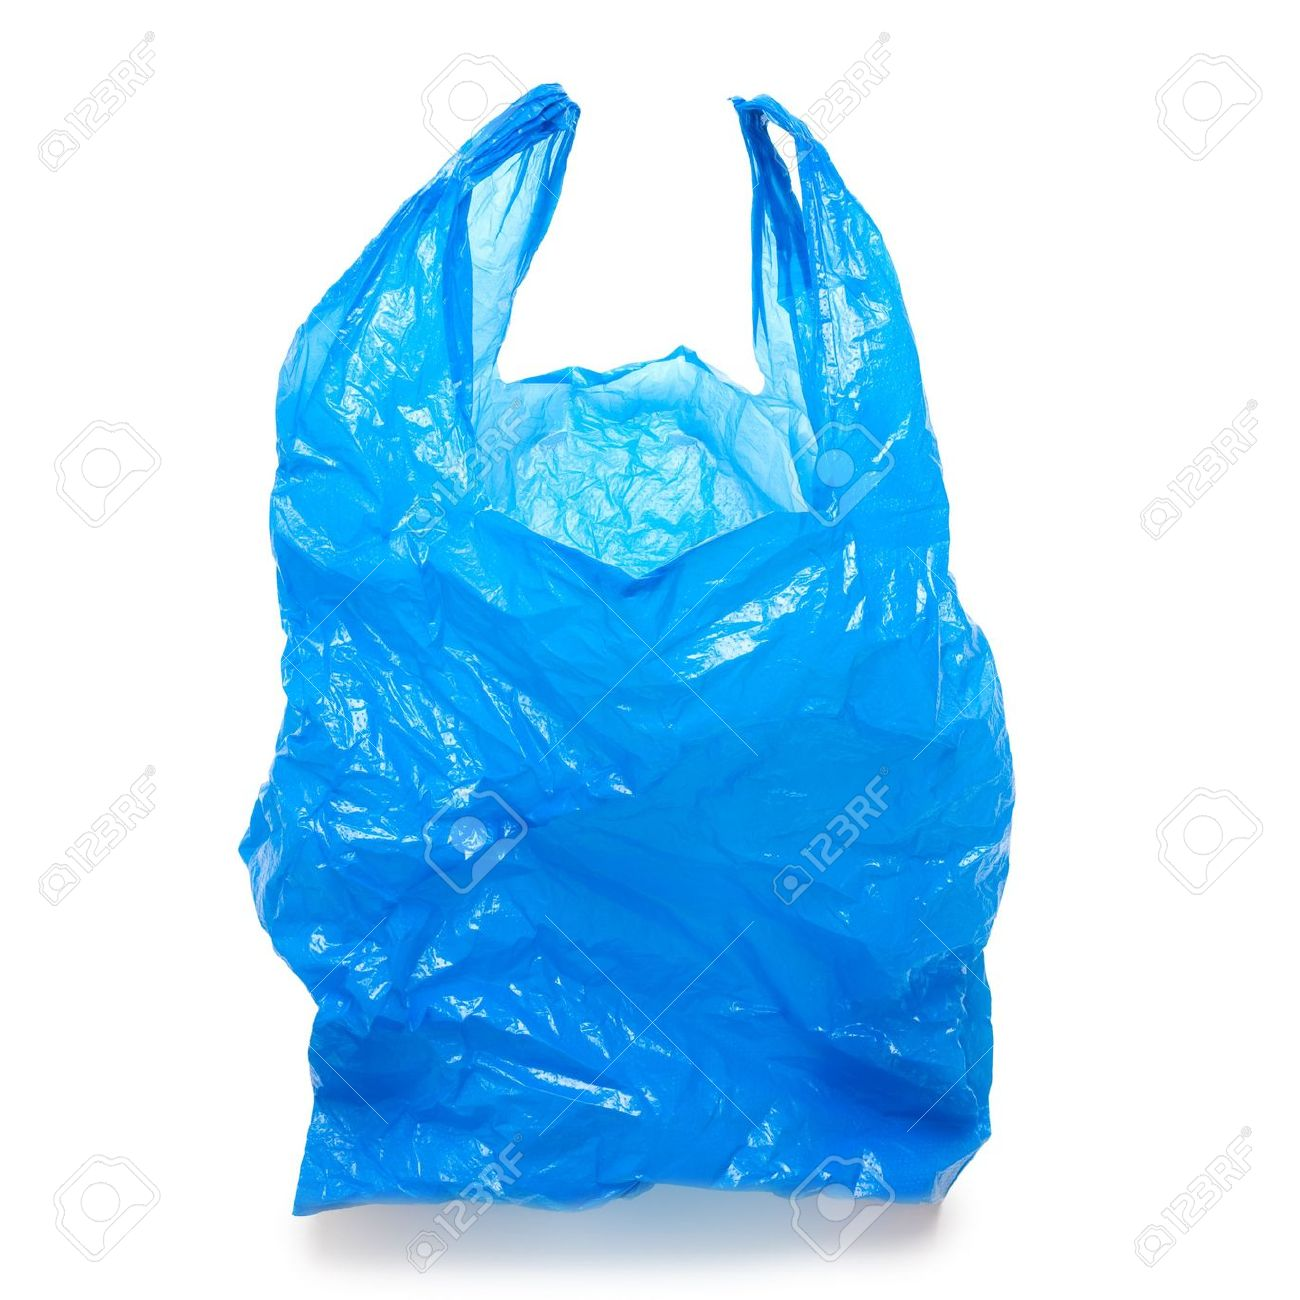 Clear plastic bag clipart.